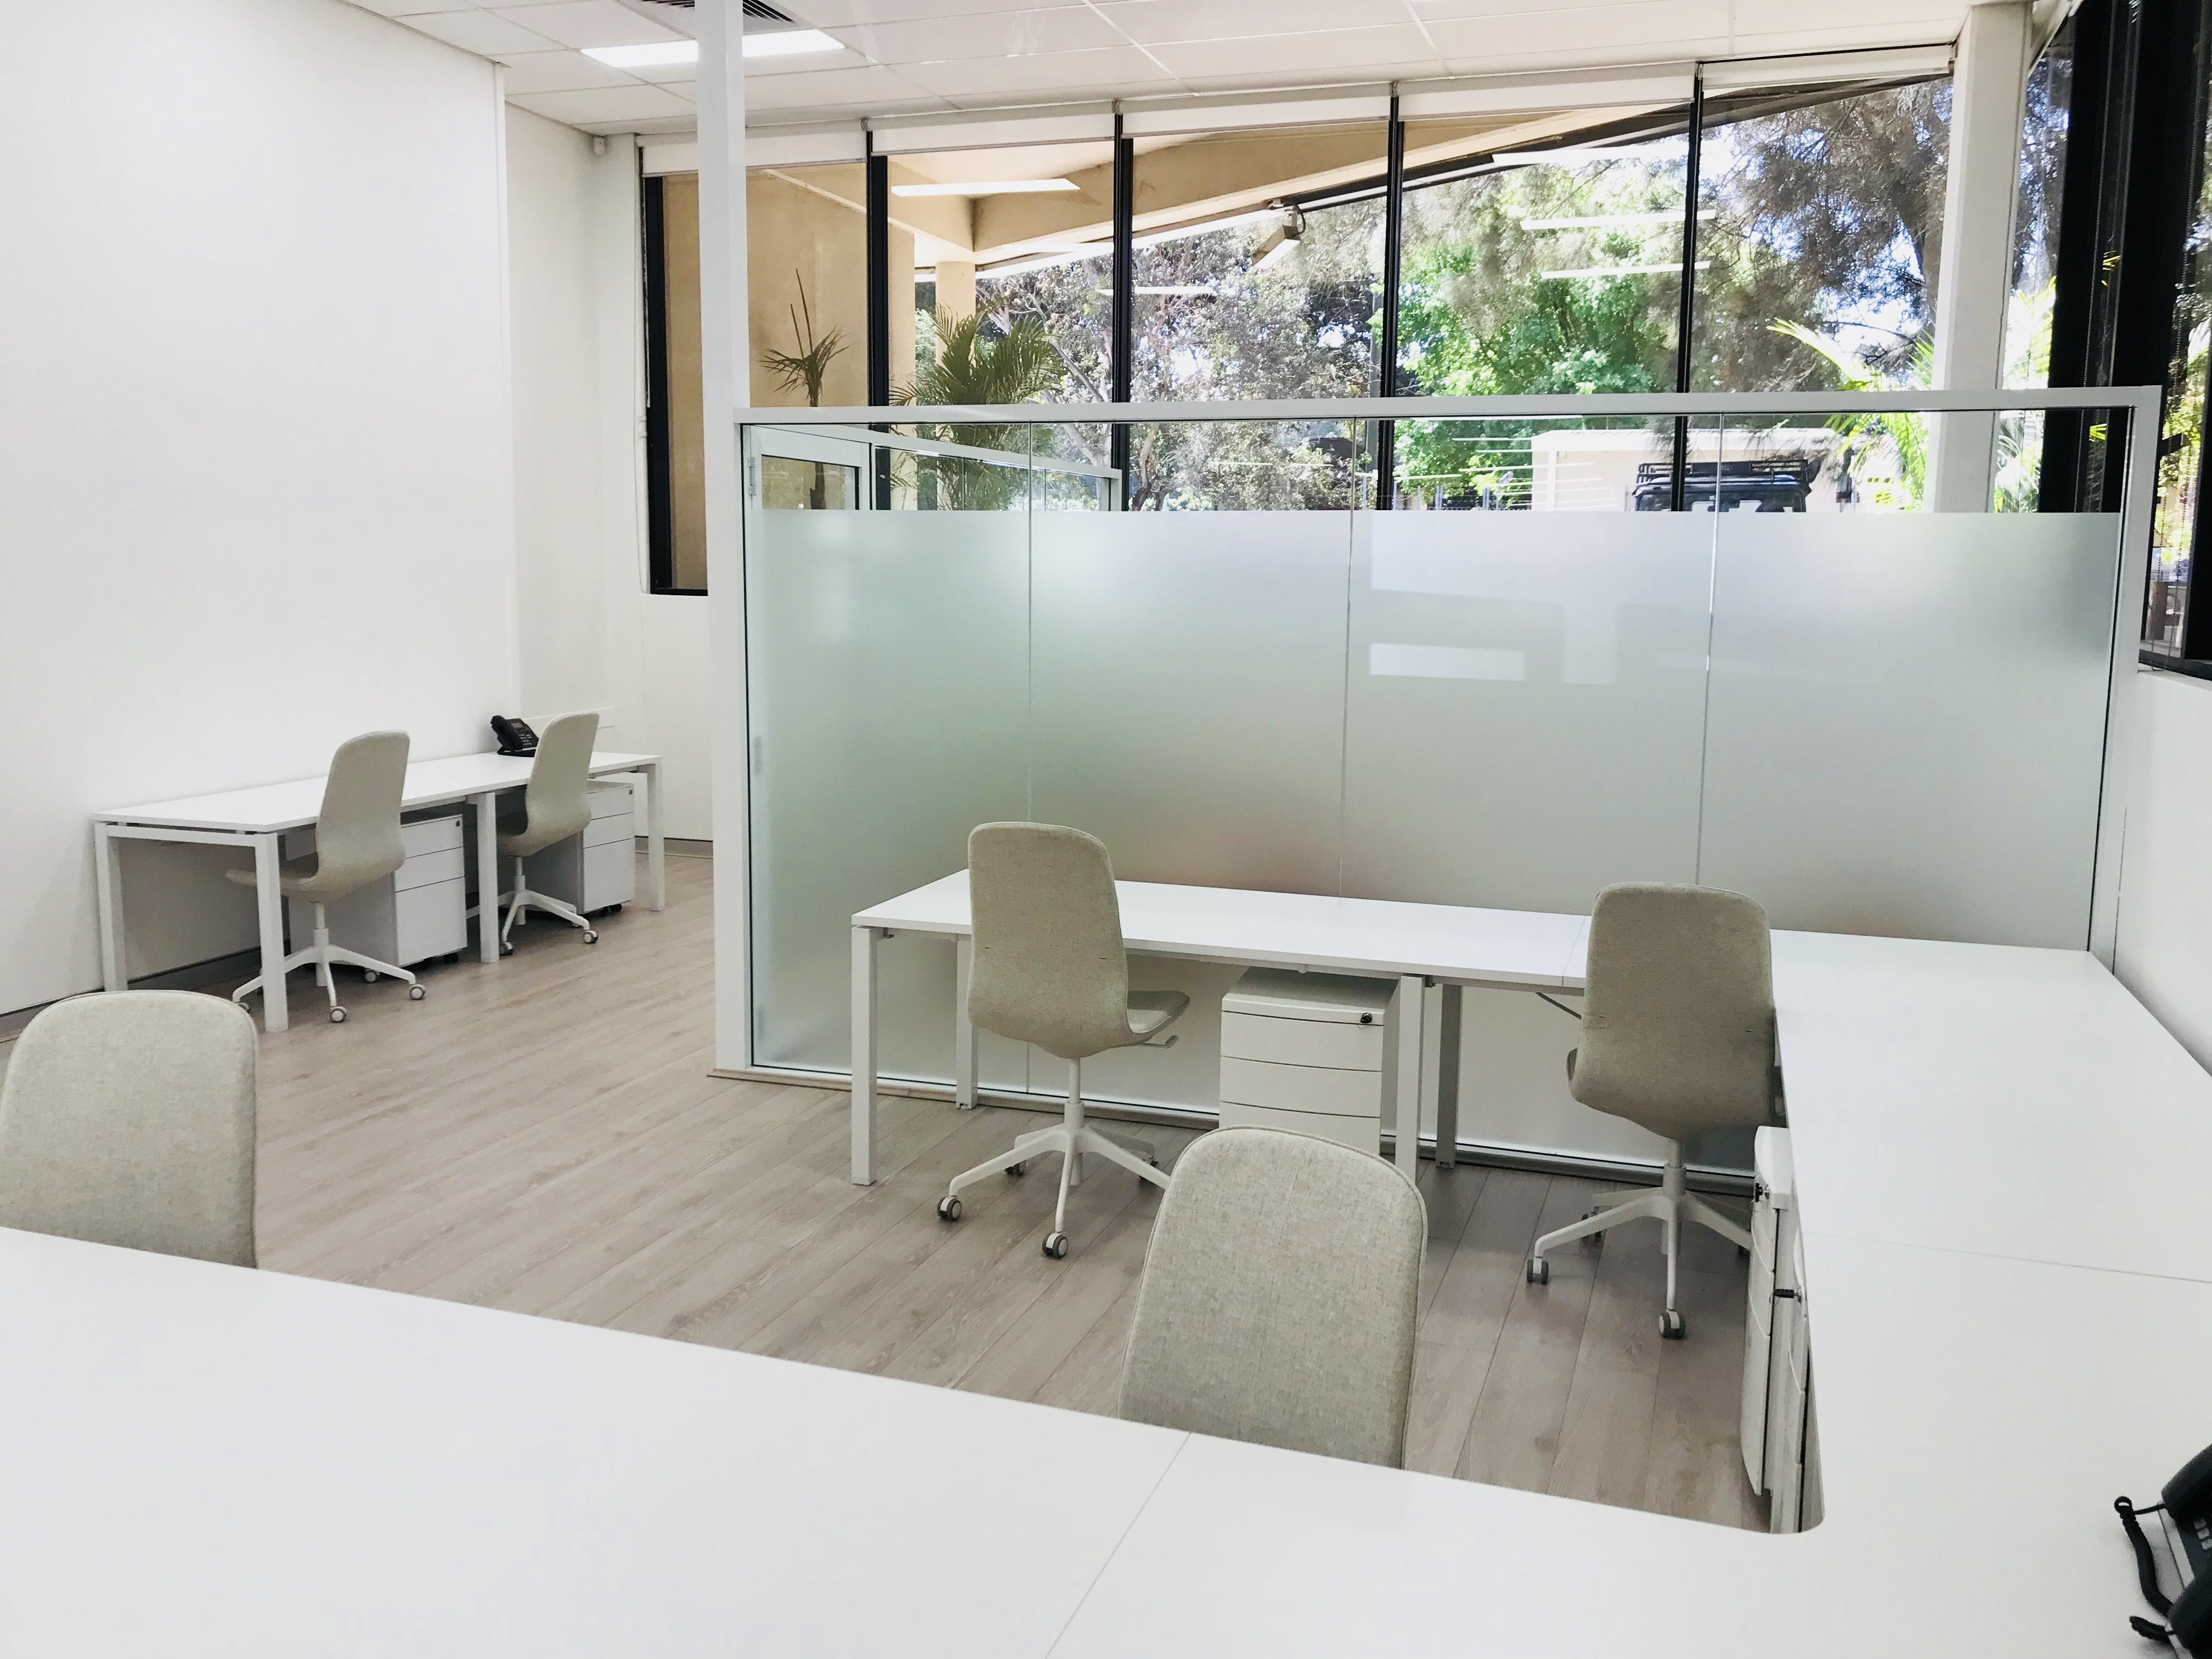 16 person Office by Alexandria Park, serviced office at Workit Spaces, image 1